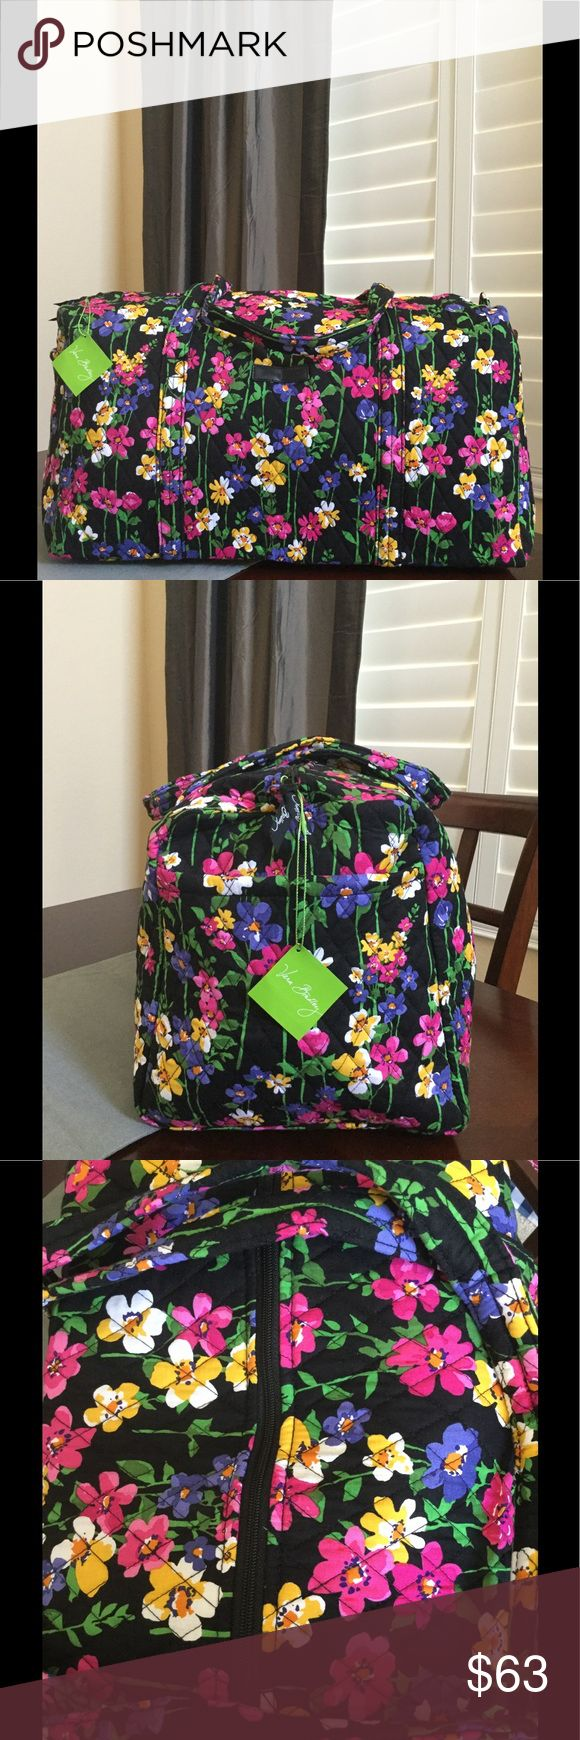 """NWT VERA BRADLEY LARGE DUFFEL Brand new with tags Vera Bradley large duffel  Wildflower garden pattern  15"""" strap drop Handy outside end pocket Folds flat for easy storing Dimensions 22"""" W x 11½"""" H x 11½"""" D - 15"""" strap drop Duffle Smoke/pet free home Vera Bradley Bags Travel Bags"""